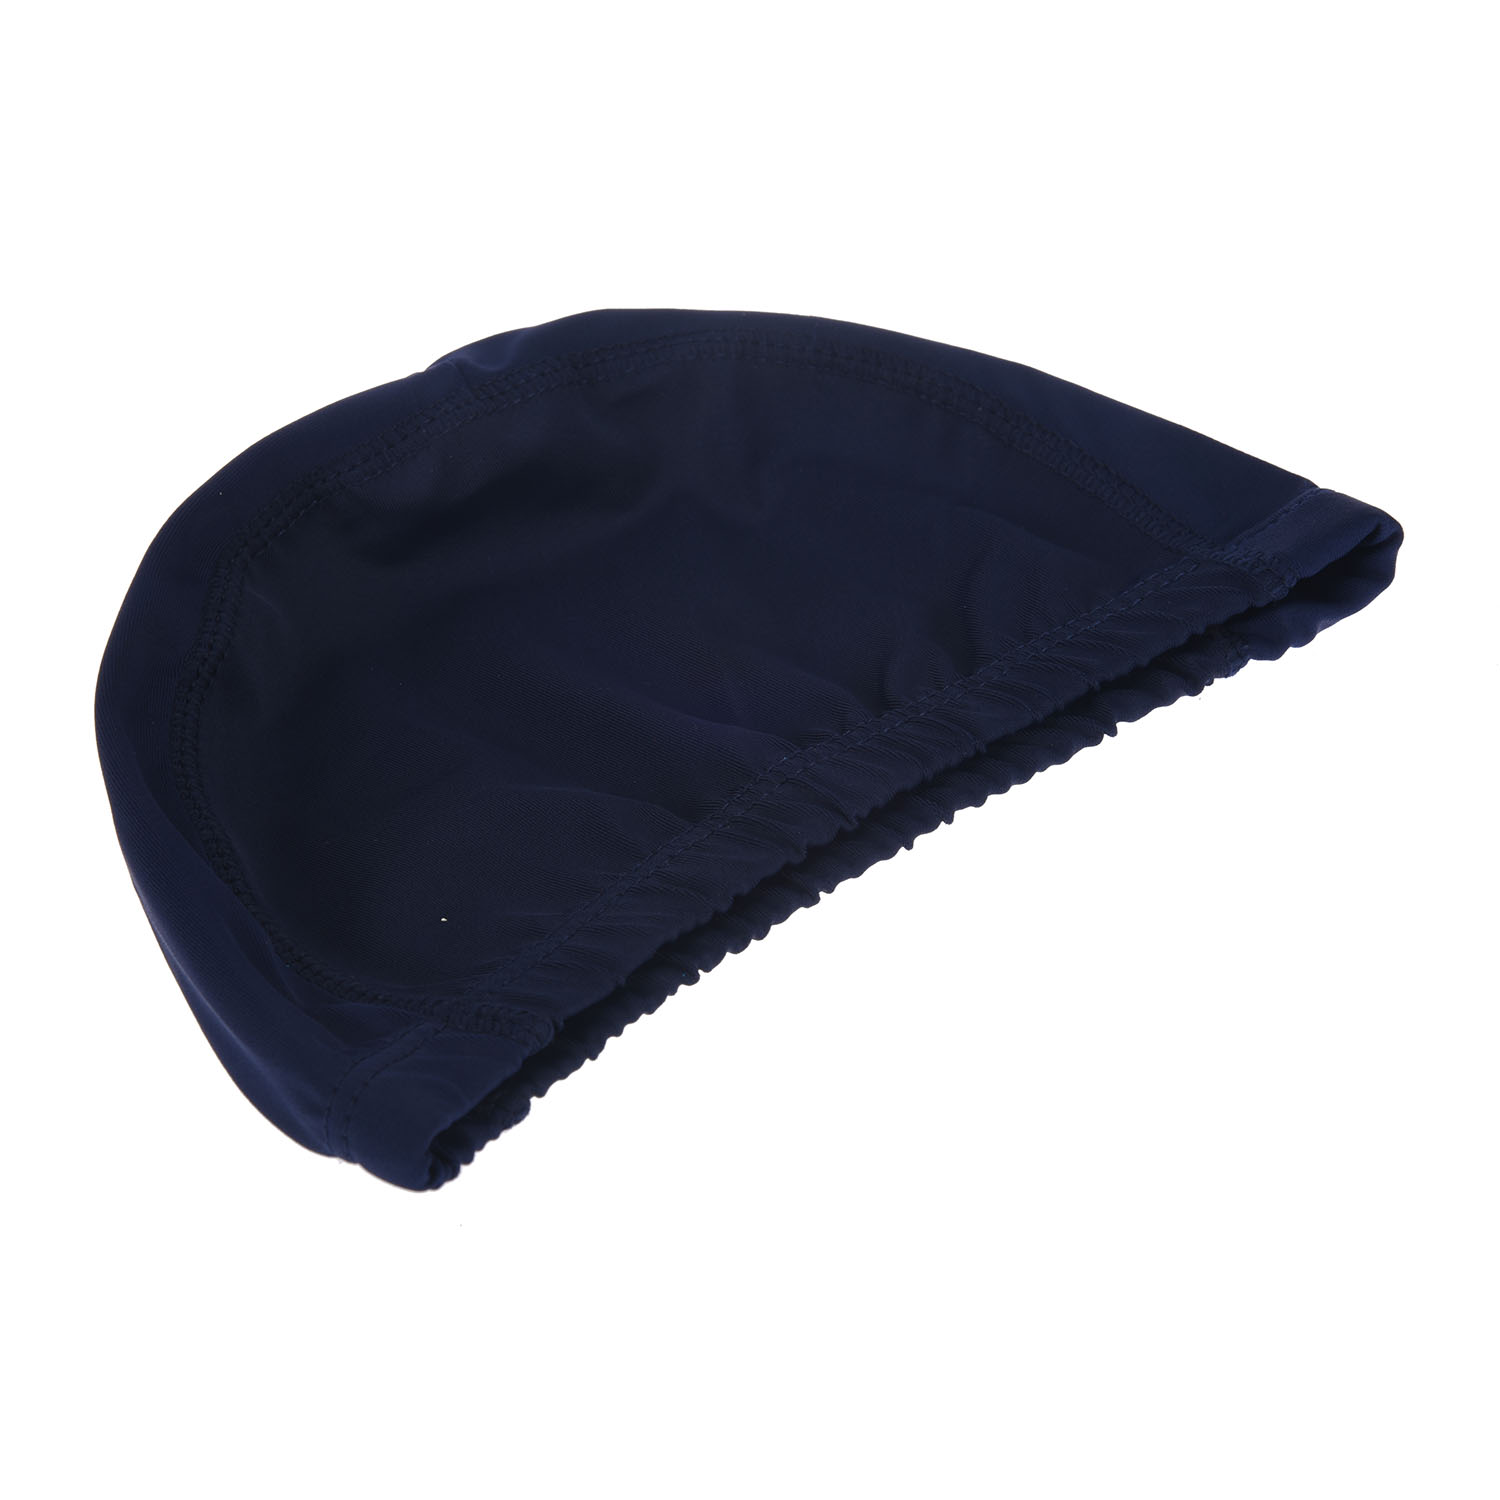 bc3f7af4280 Super sell Polyester Men Women Sporty Flexible Cloth Swimming Cap Swim Hat  Blue-in Swimming Caps from Sports & Entertainment on Aliexpress.com |  Alibaba ...